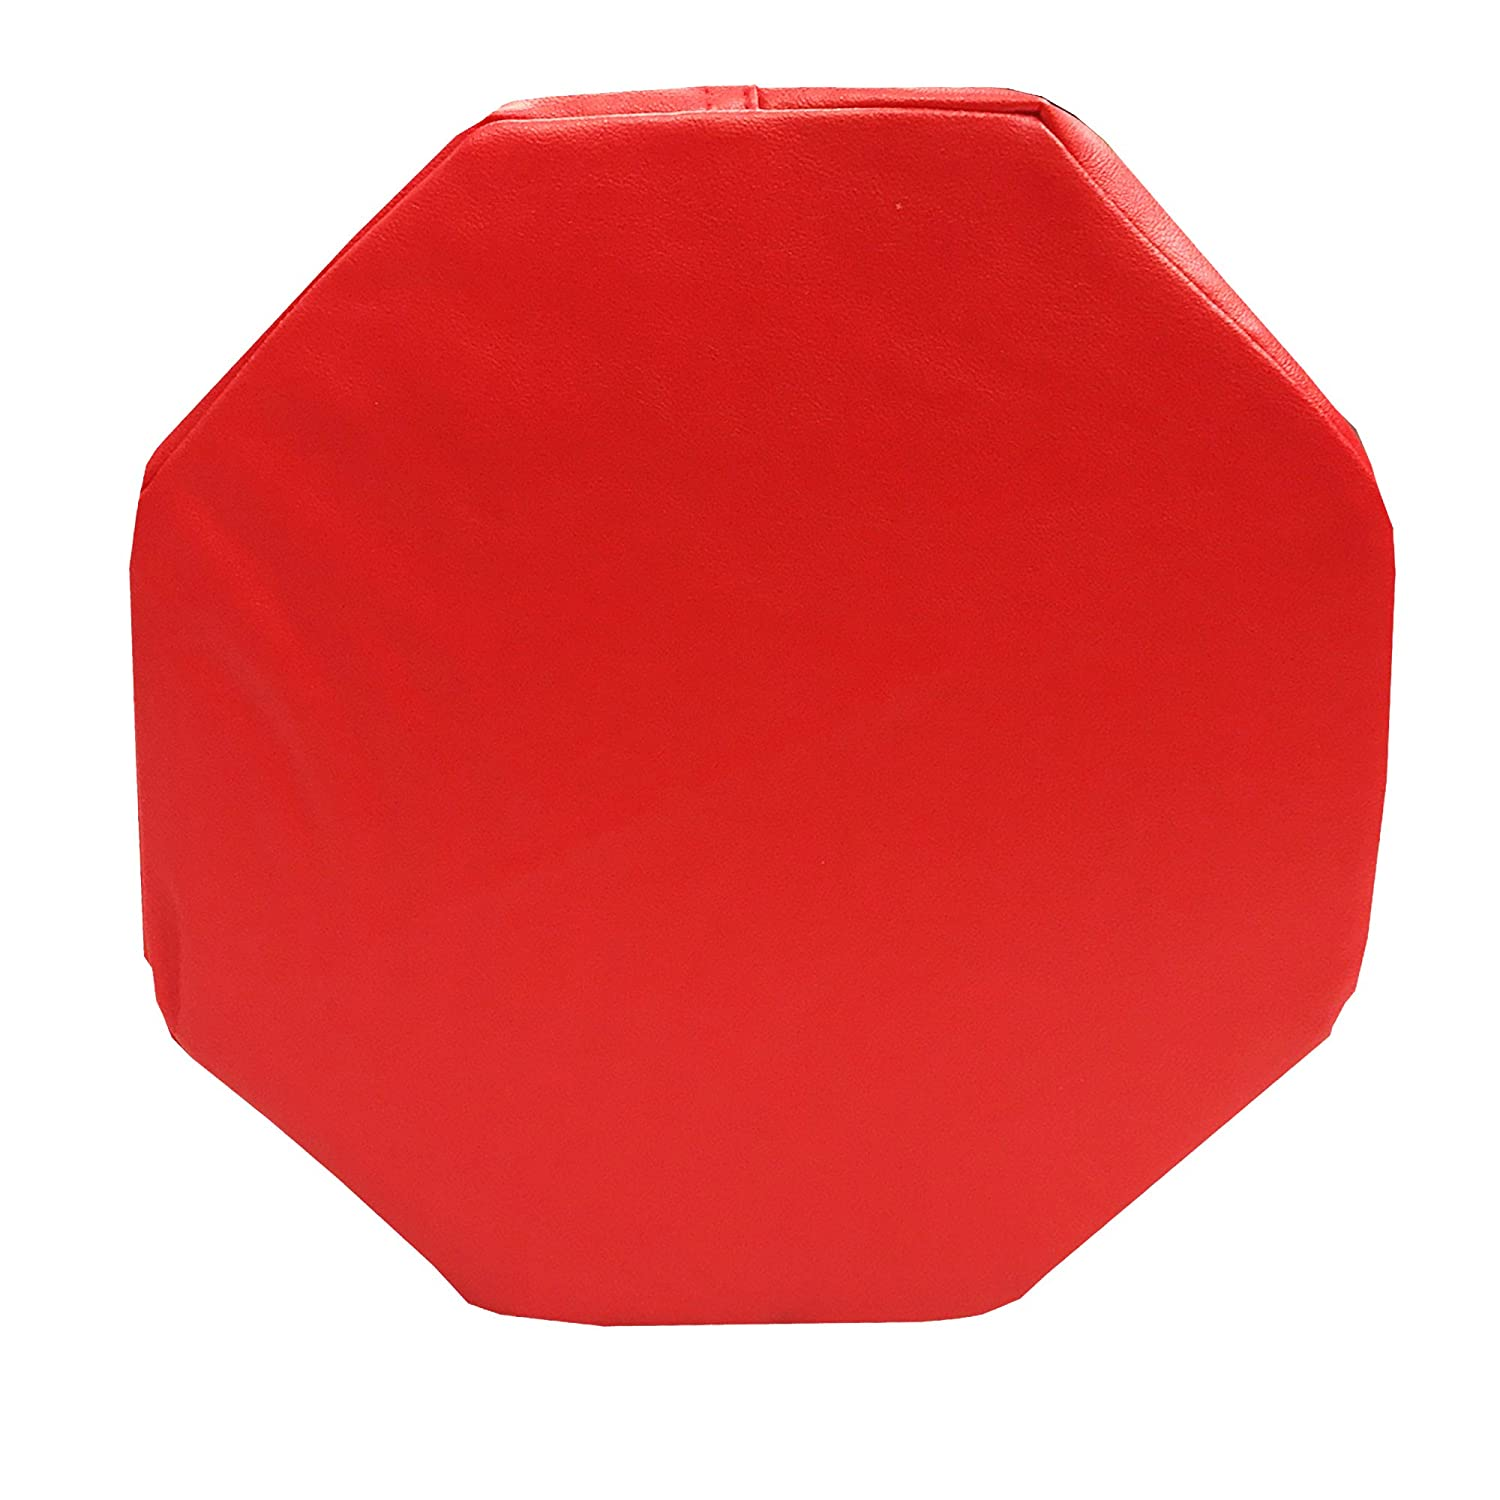 Senseez Calming Cushion for Kids - Red Octagon SP25873